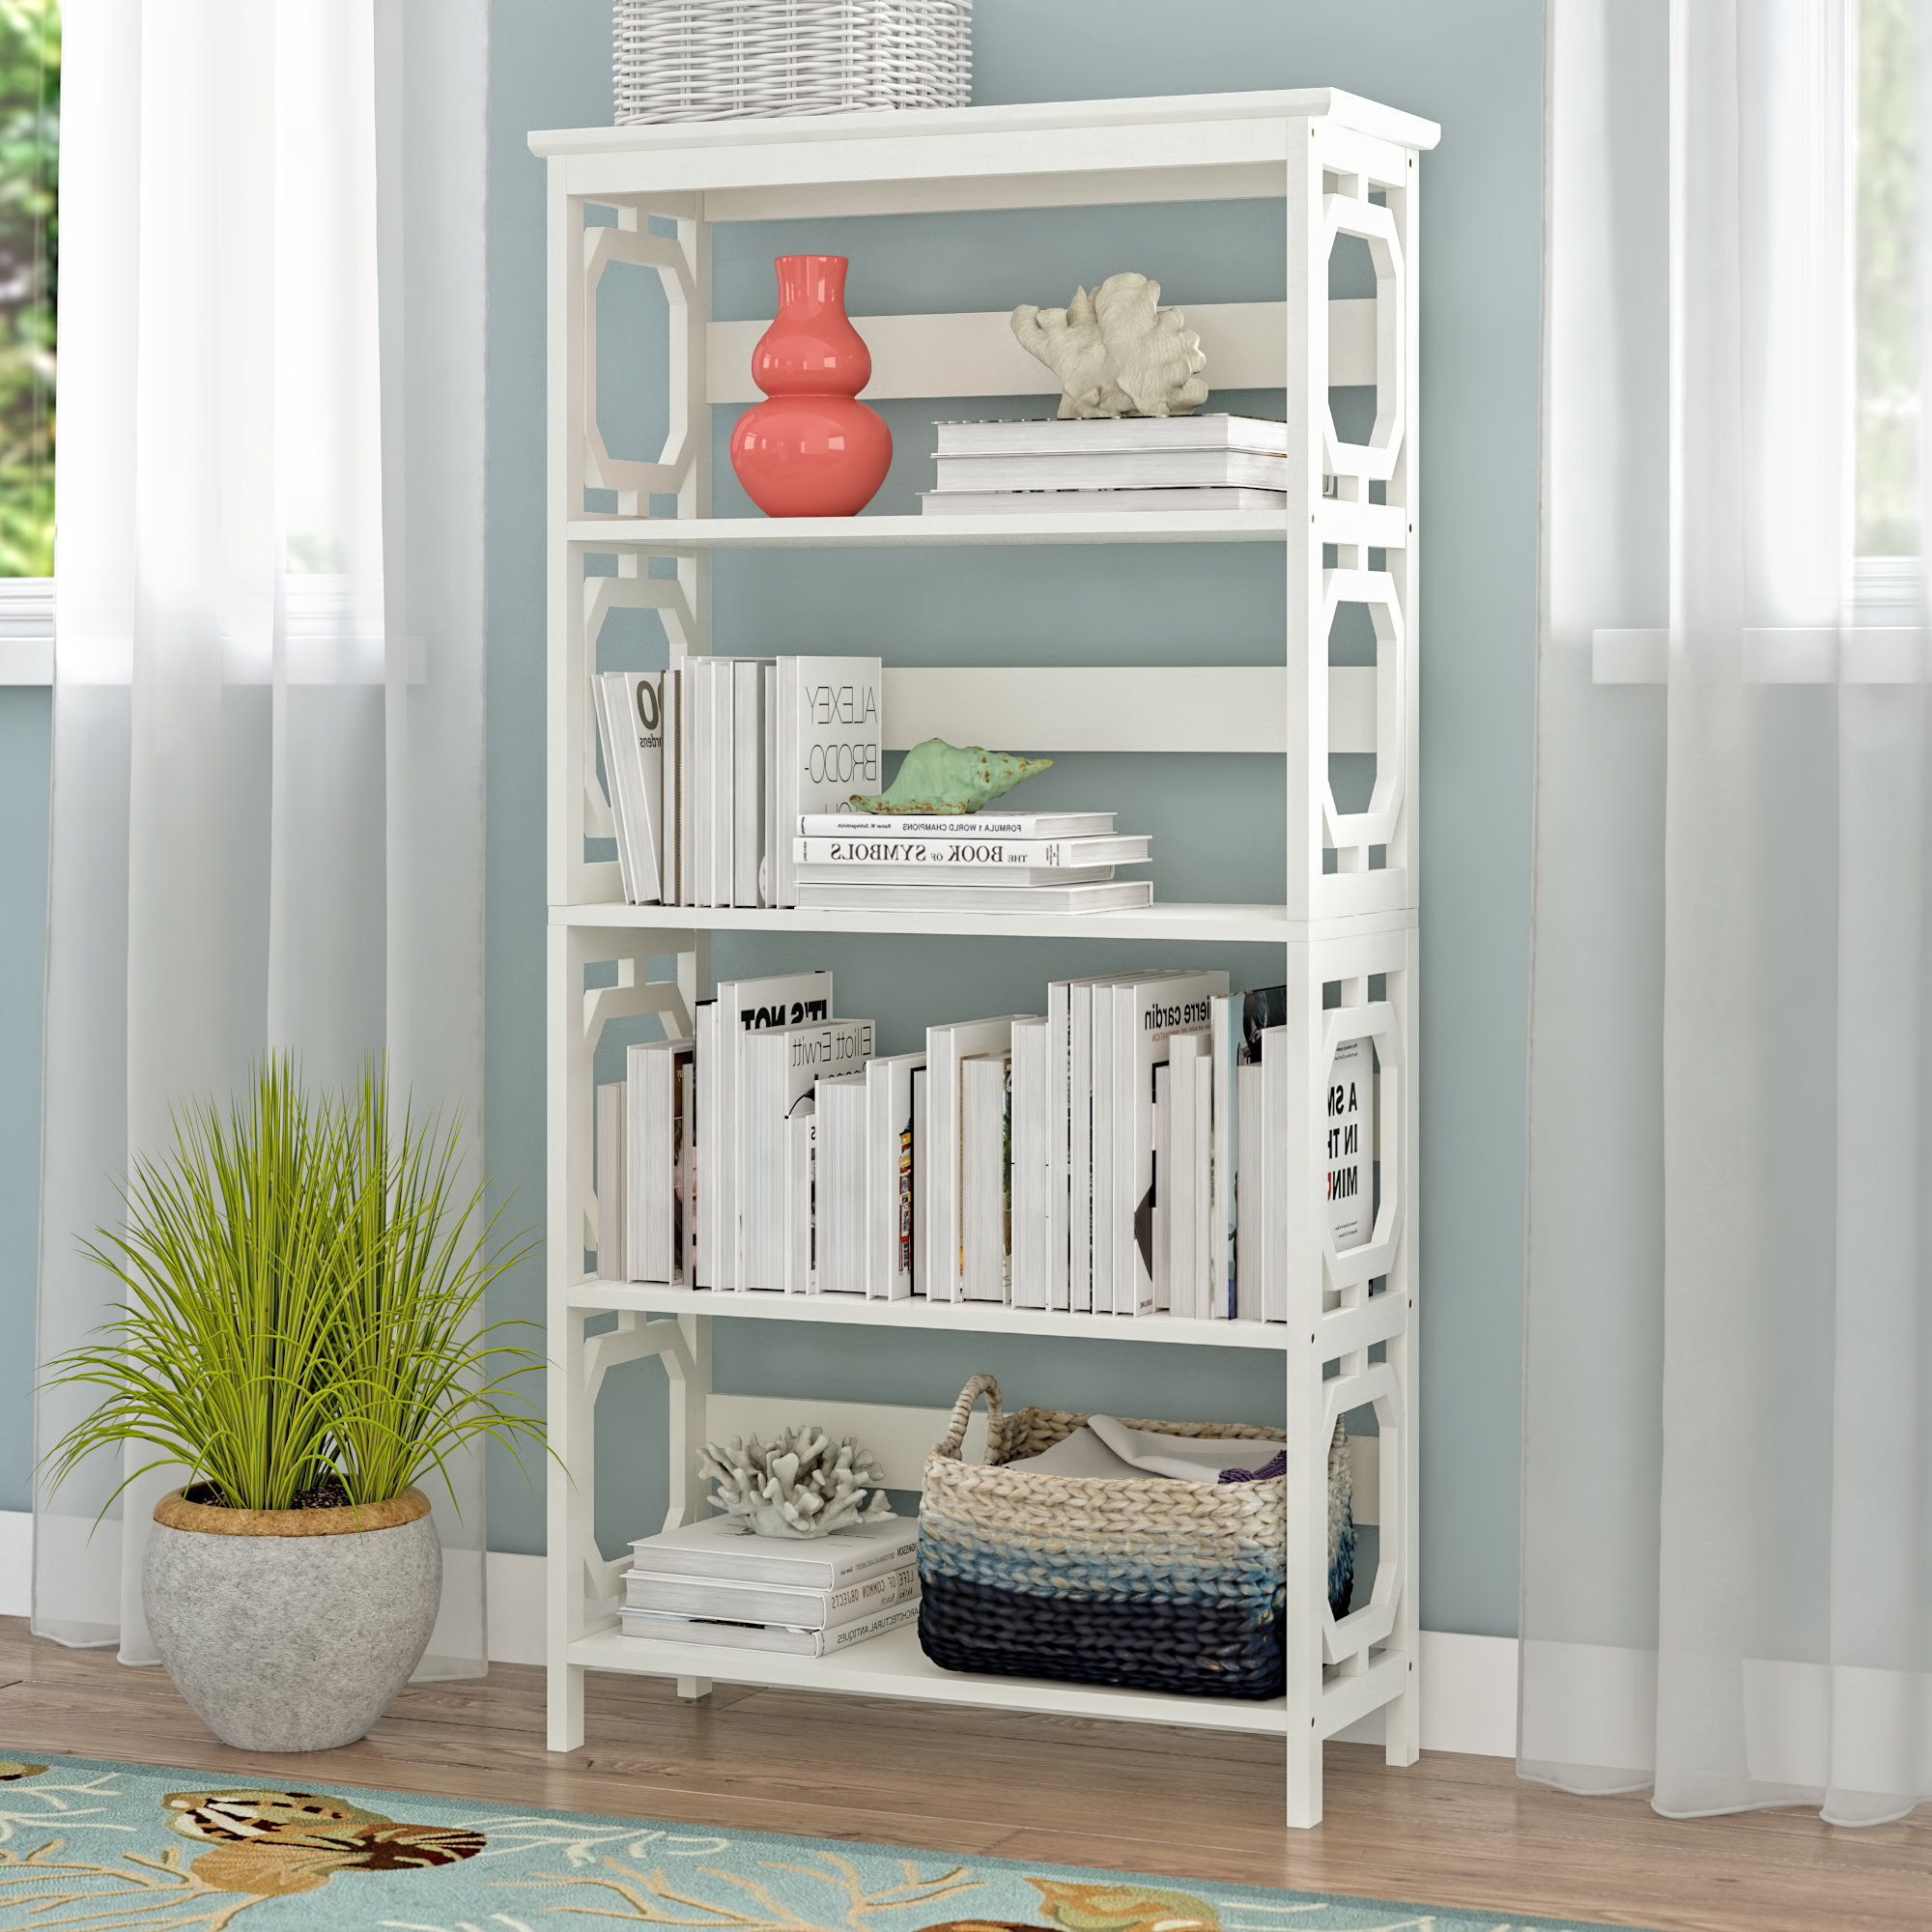 Annabesook Etagere Bookcases Intended For Favorite Beachcrest Home Ardenvor Etagere Standard Bookcase & Reviews (Gallery 3 of 20)